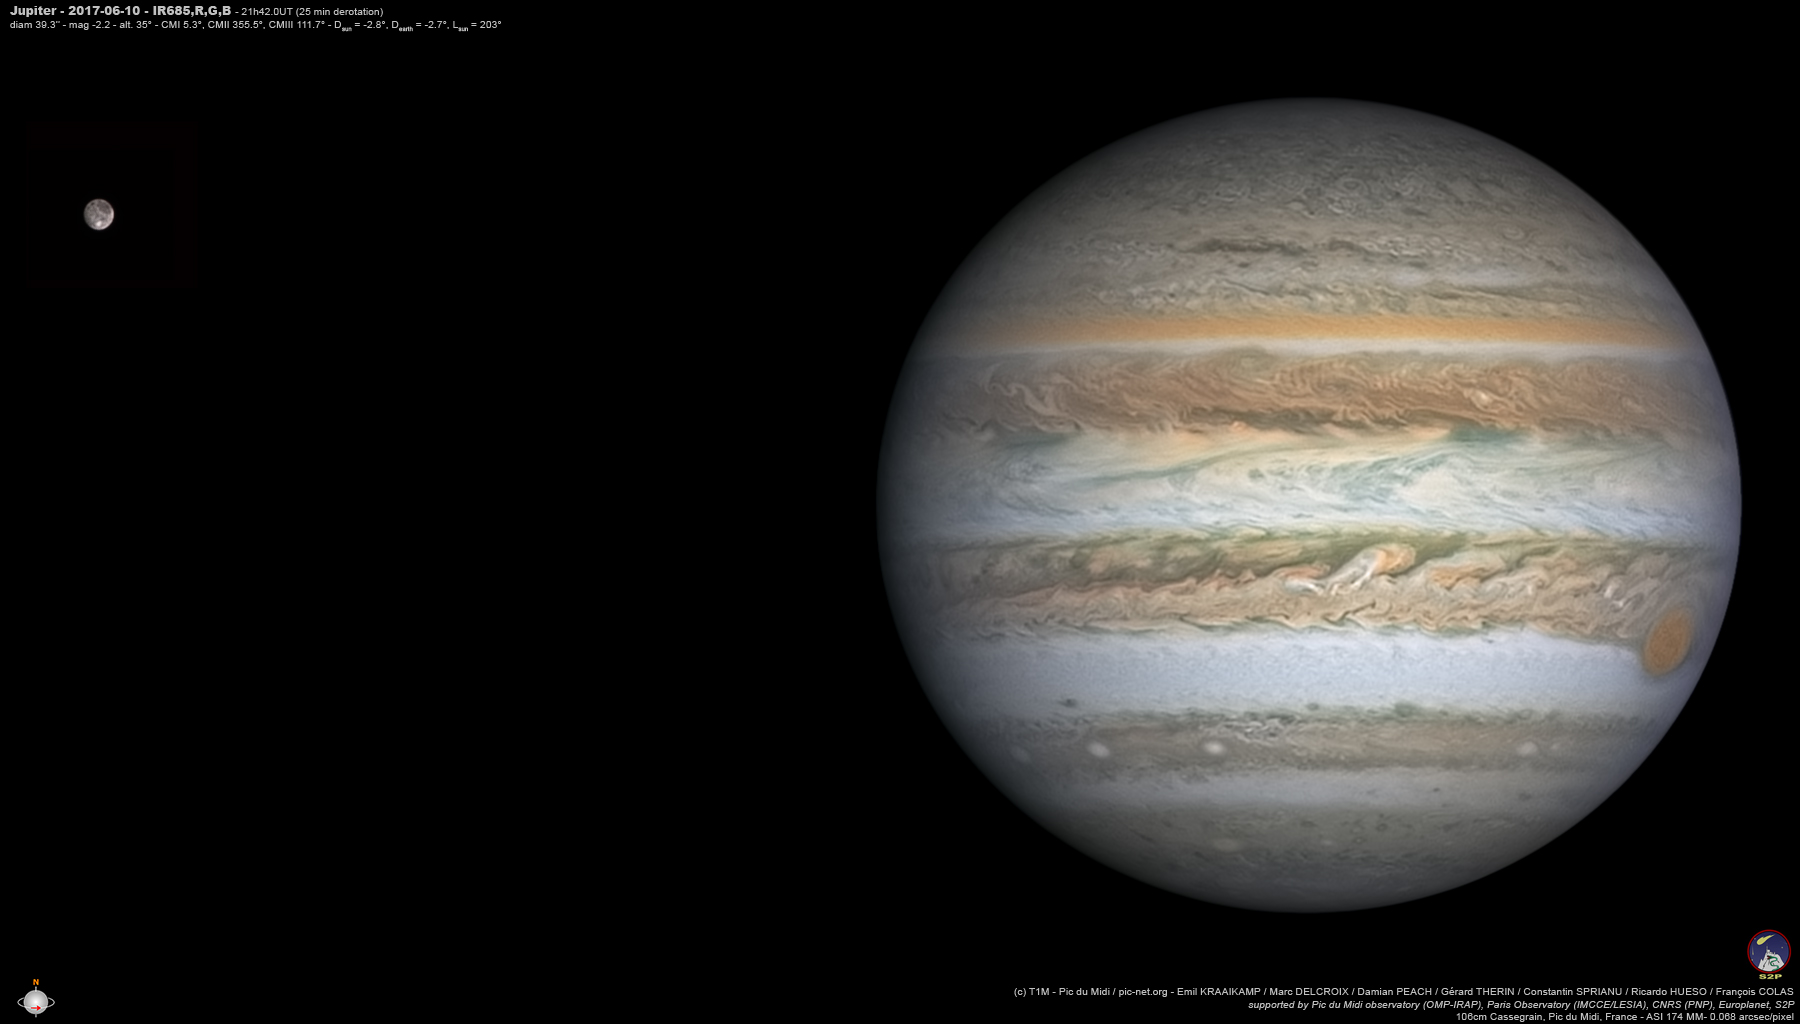 Jupiter images obtained at Pic du Midi show the global state of Jupiter's atmosphere providing context to the time gaps between observations run by the Juno mission and are the basis for long-term studies. Credit: E. Kraaikamp/ D. Peach/ F. Colas / M. Delcroix / R. Hueso/ C. Sprianu / G. Therin / Pic du Midi Observatory (OMP-IRAP) / Paris Observatory (IMCCE / LESIA) / CNRS (PNP) / Europlanet 2020 RI / S2P